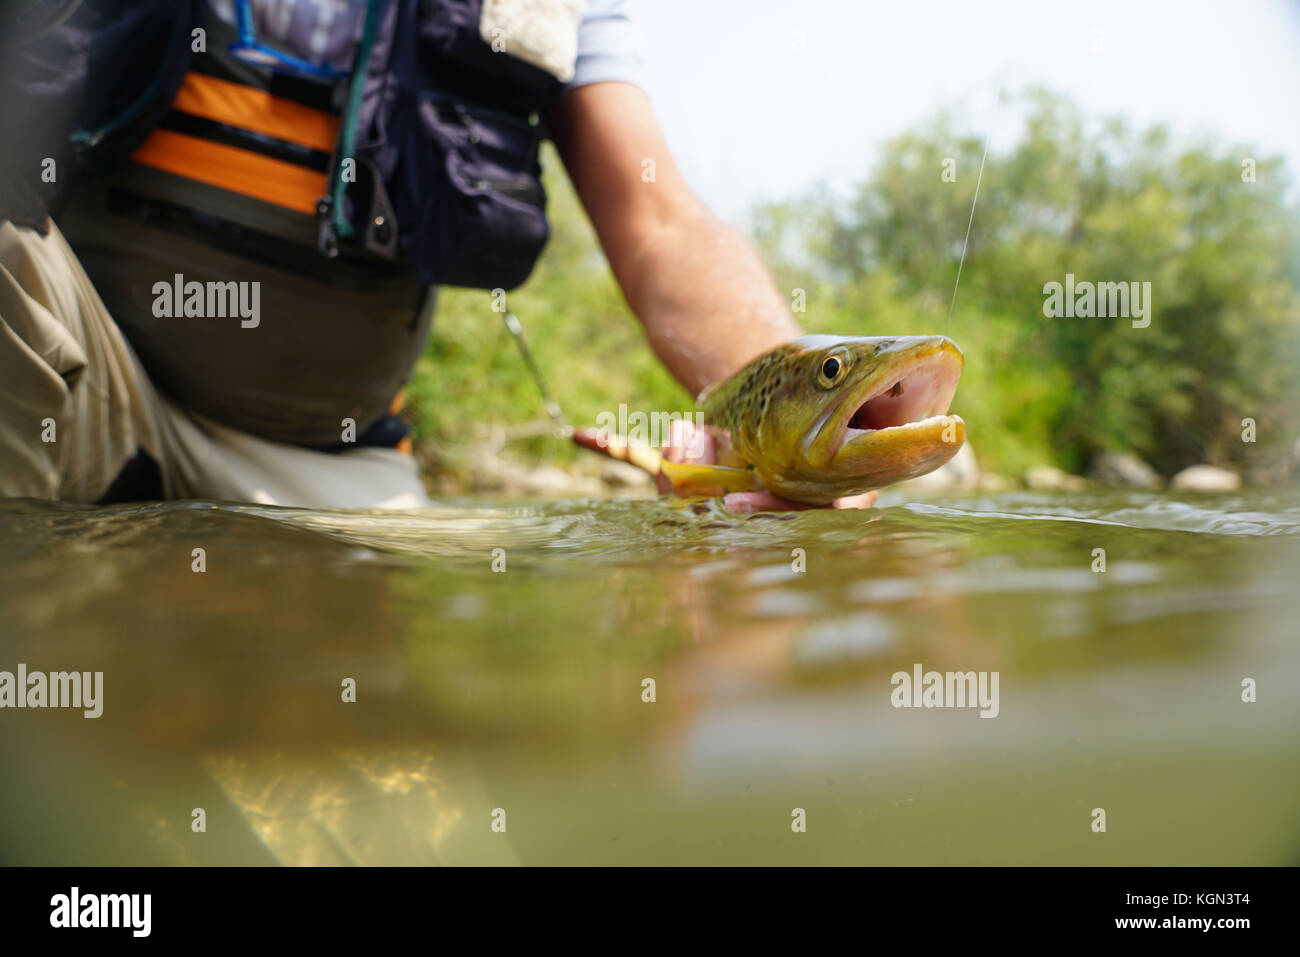 Fly fisherman catching brown trout in river - Stock Image